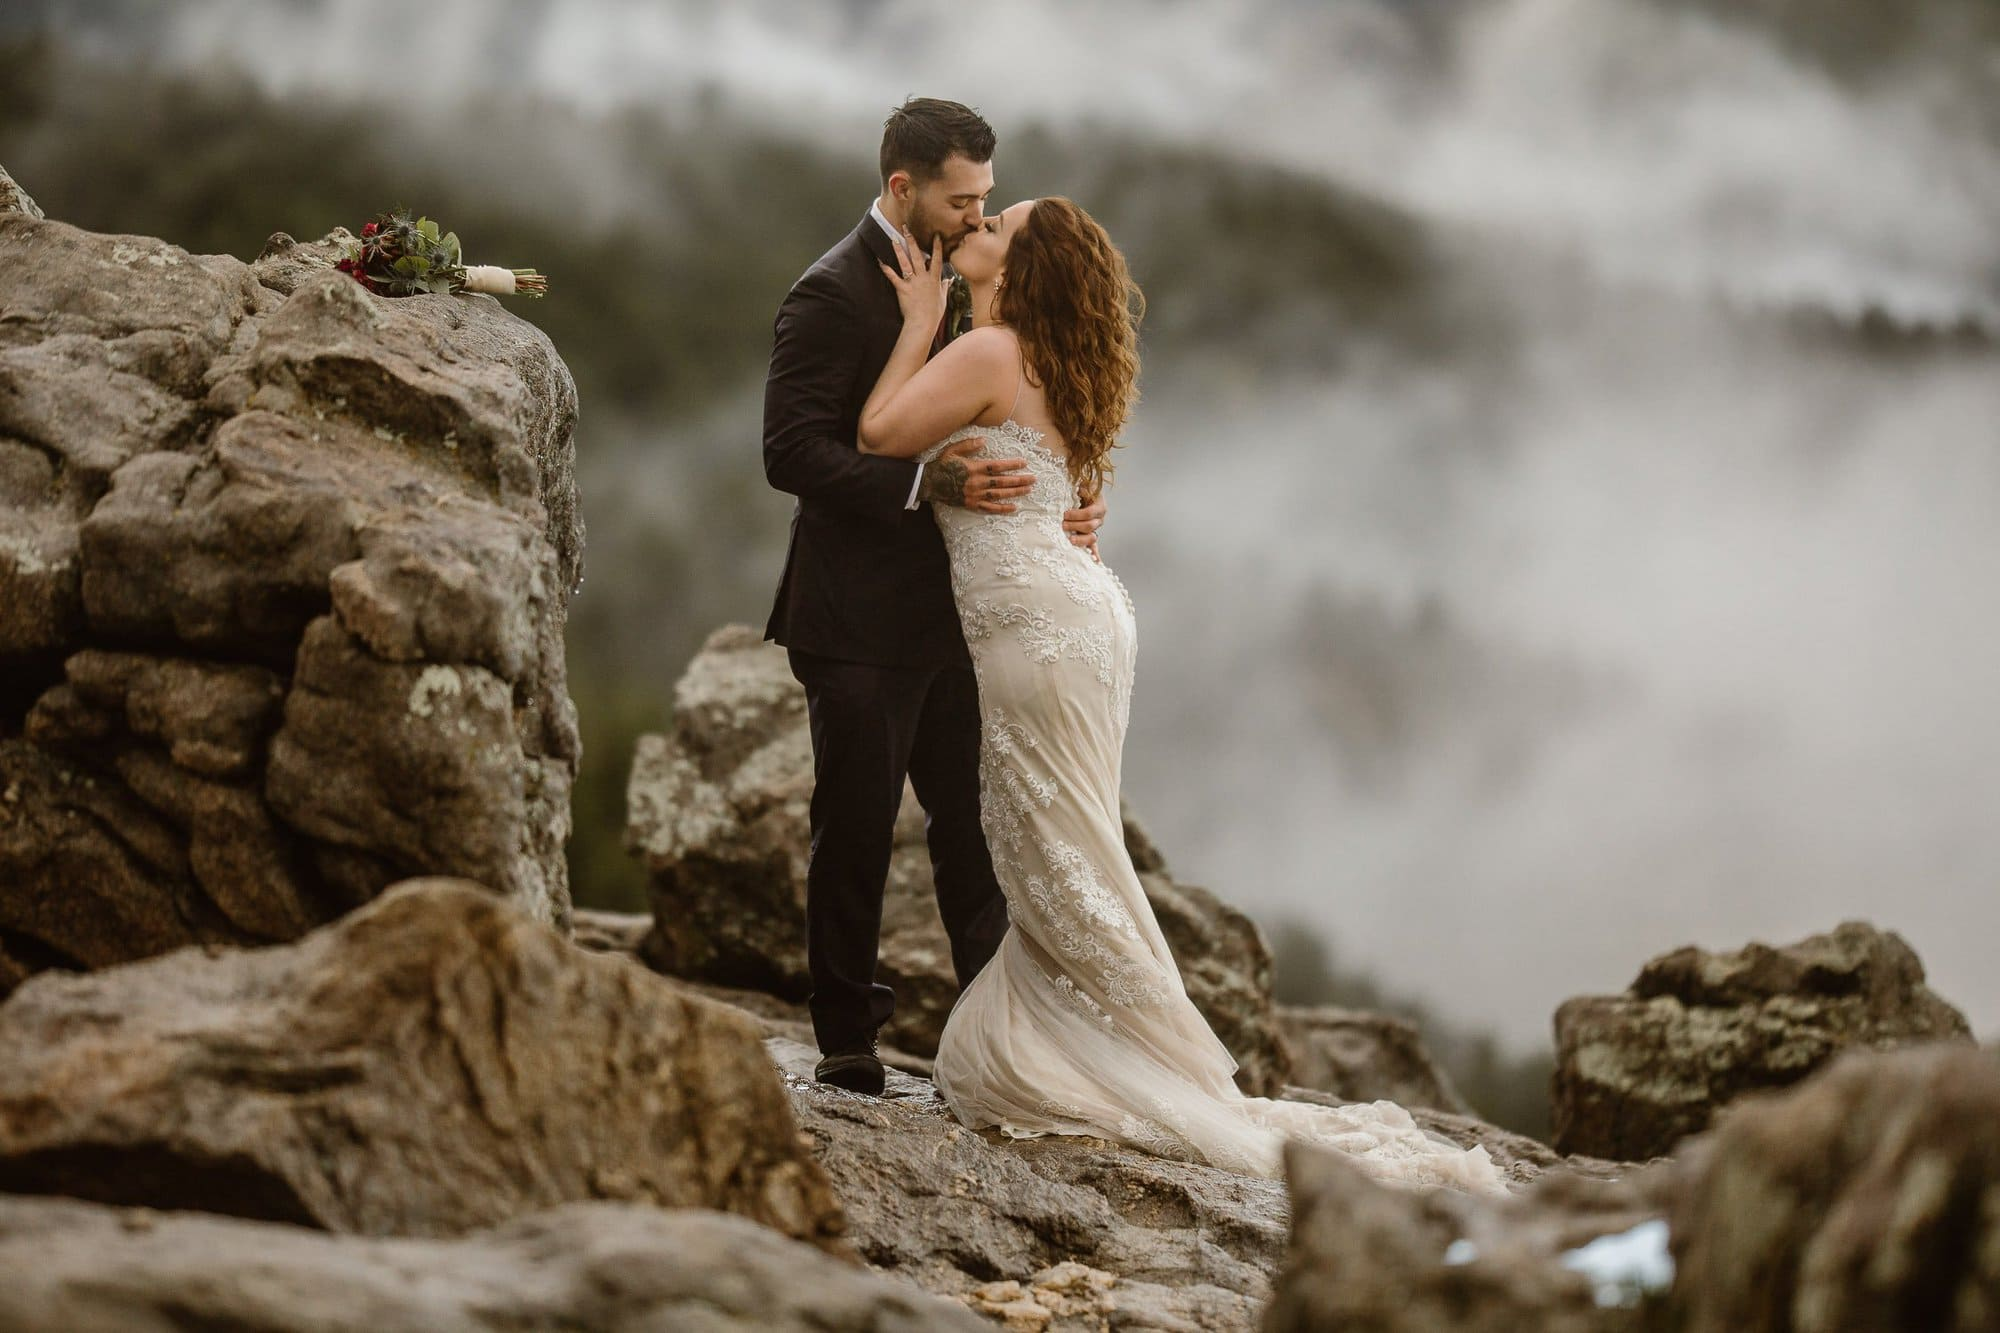 Walking on the clouds, commenting lives to each other on the top of the world in Colorado, Boulder Photos by Justyna E Butler Photography Colorado Elopement Photographer